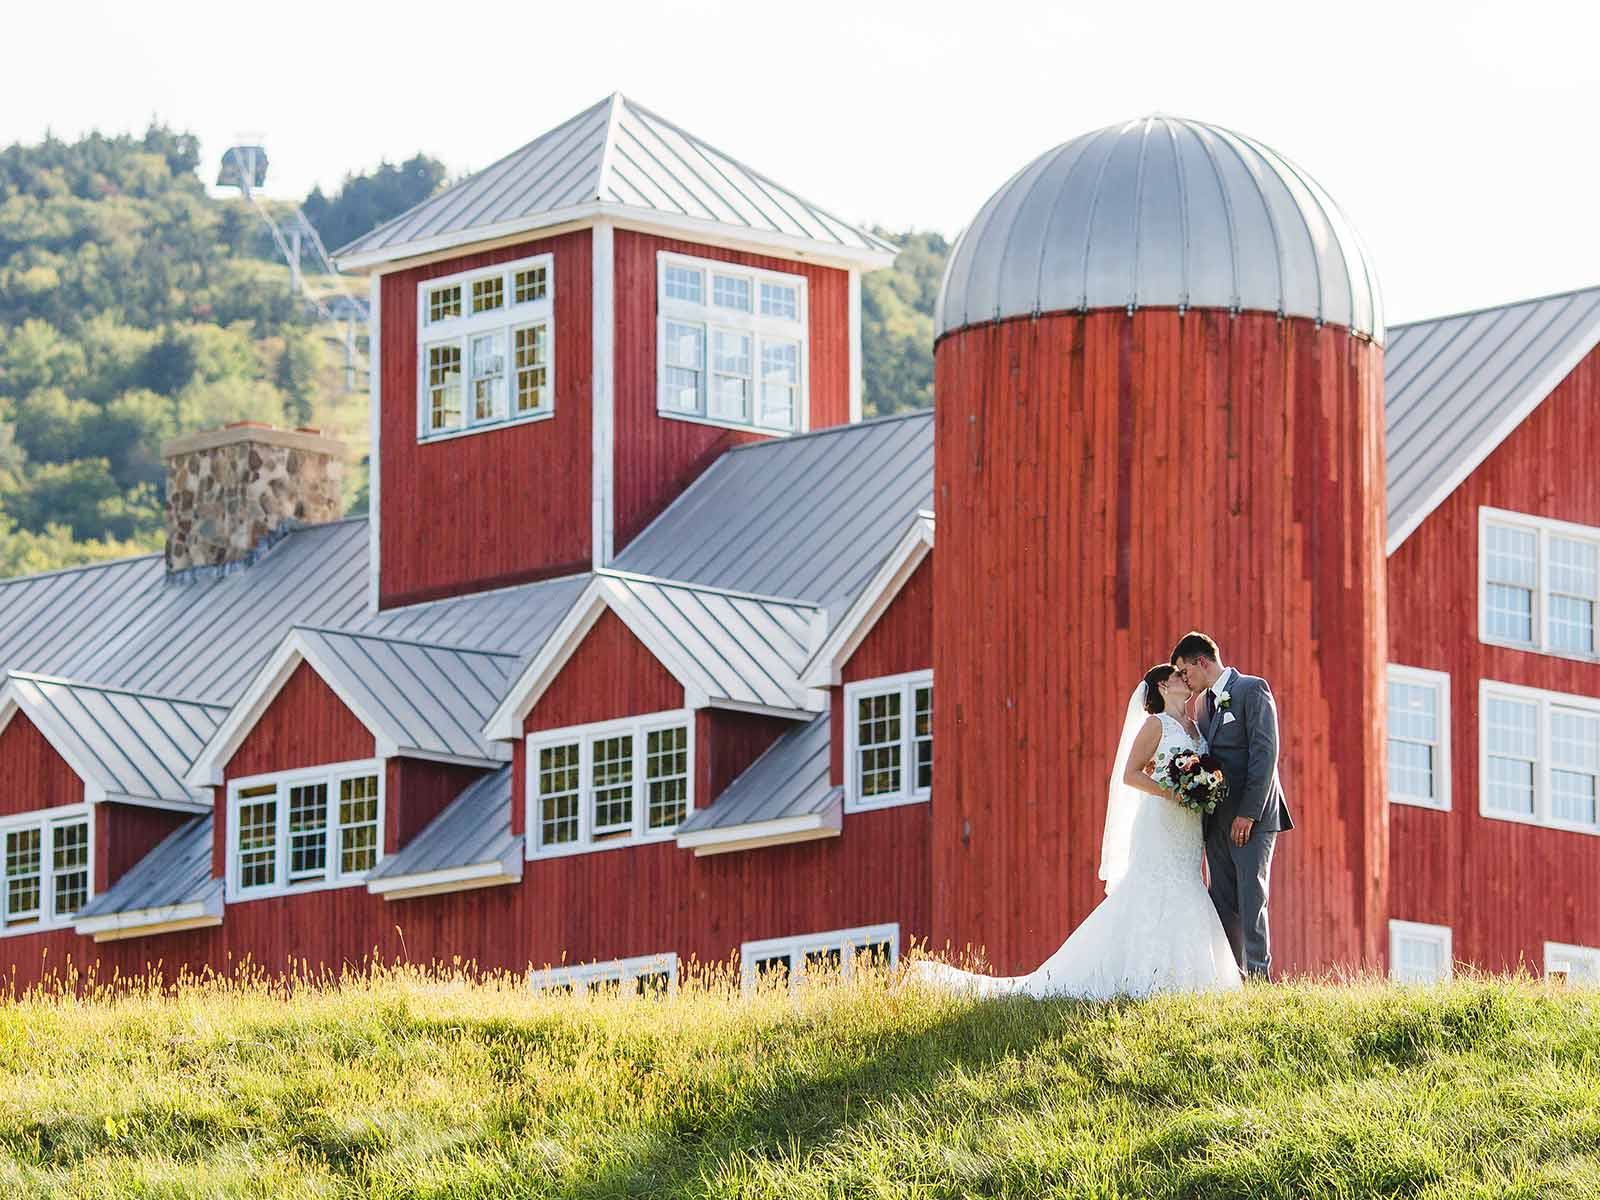 A bride and groom in front of the Red Barn silo.